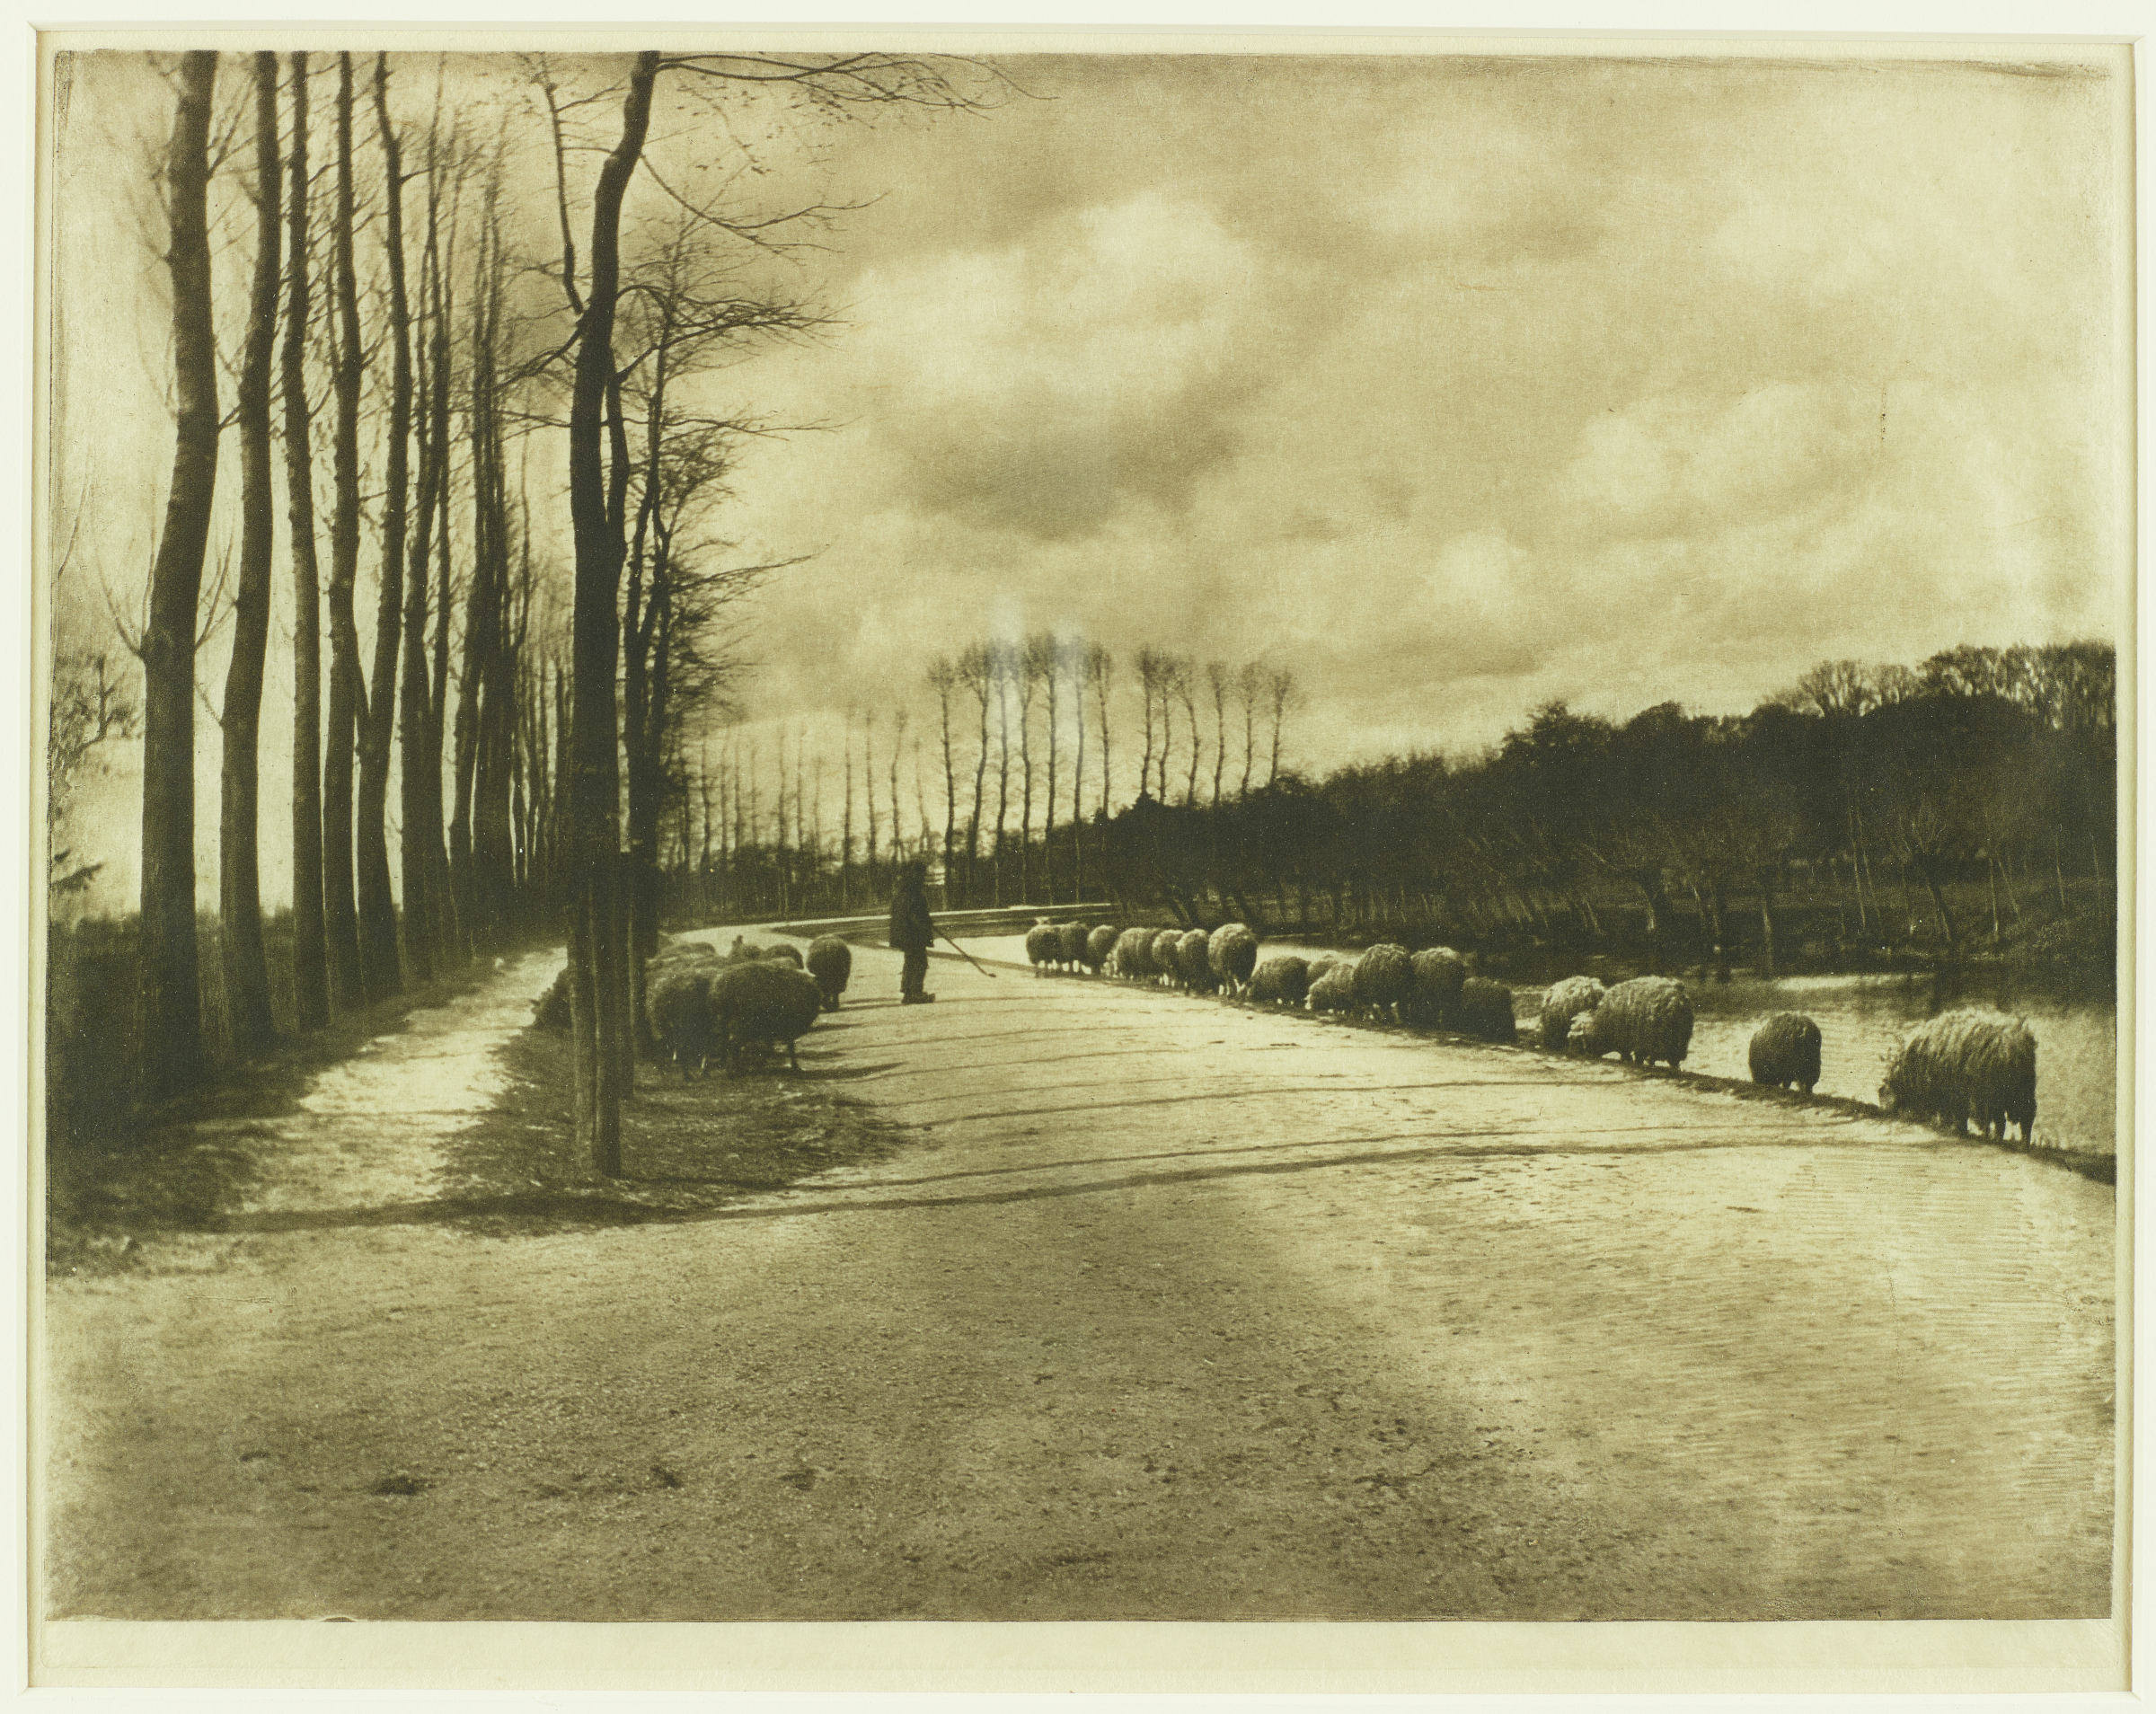 This black and white photograph represents sheep walking away from the viewer beside a river at the right of the image. A man on a road heards the sheep. There are more sheep to his left, walking alongside a stand of trees. The background is filled with trees of varying heights.